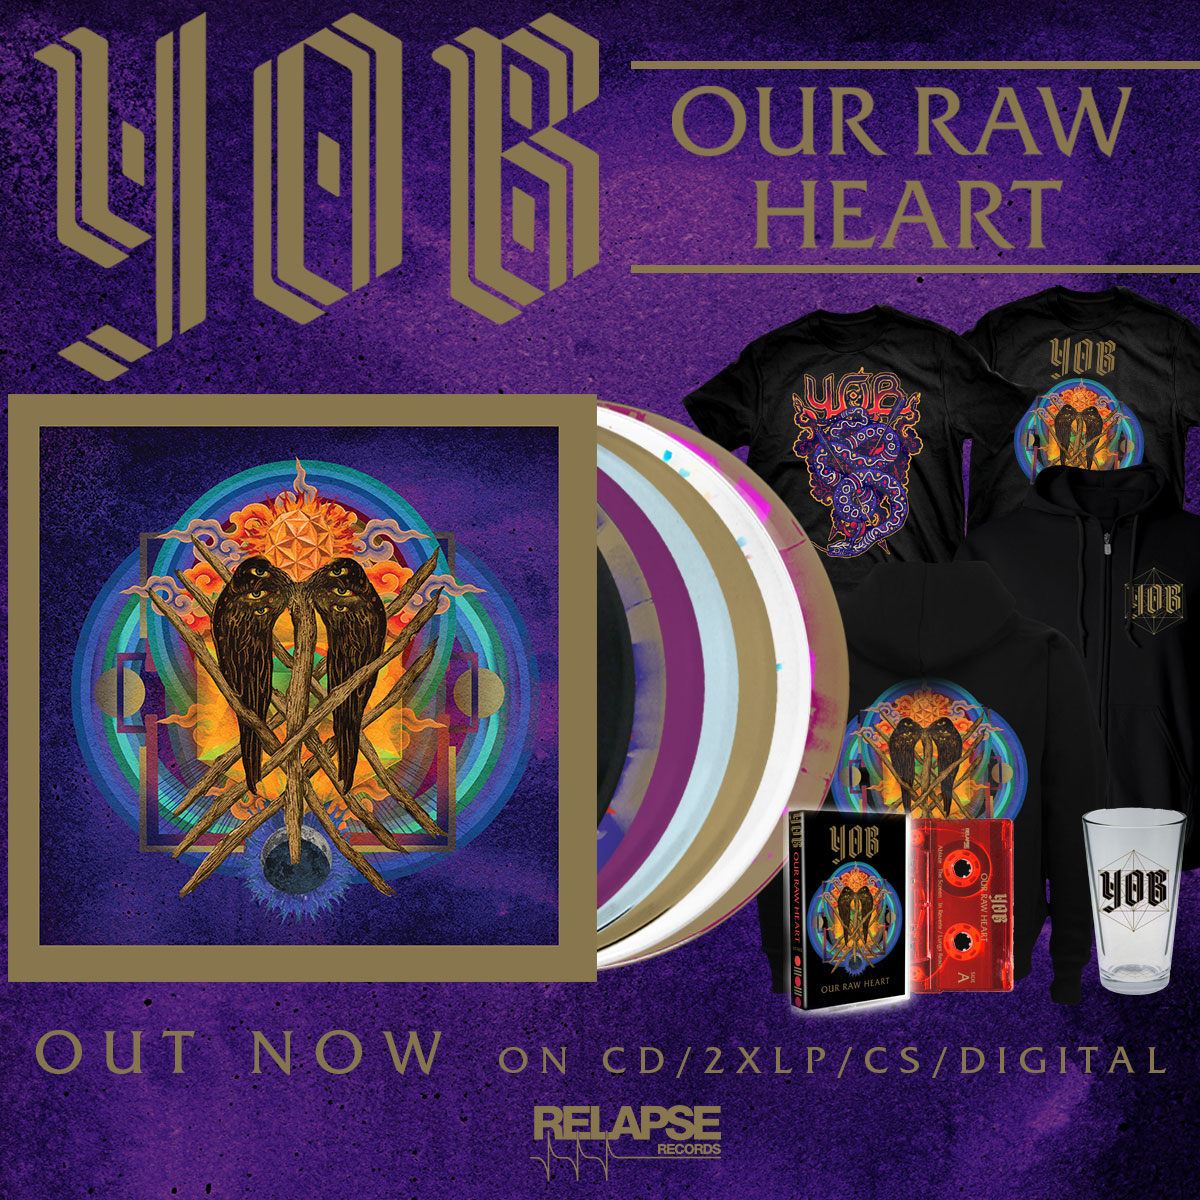 Relapse Records Official Store Cat 5 Patch Panel Wiring Diagram Free Download Yob Our Raw Heart Out Now